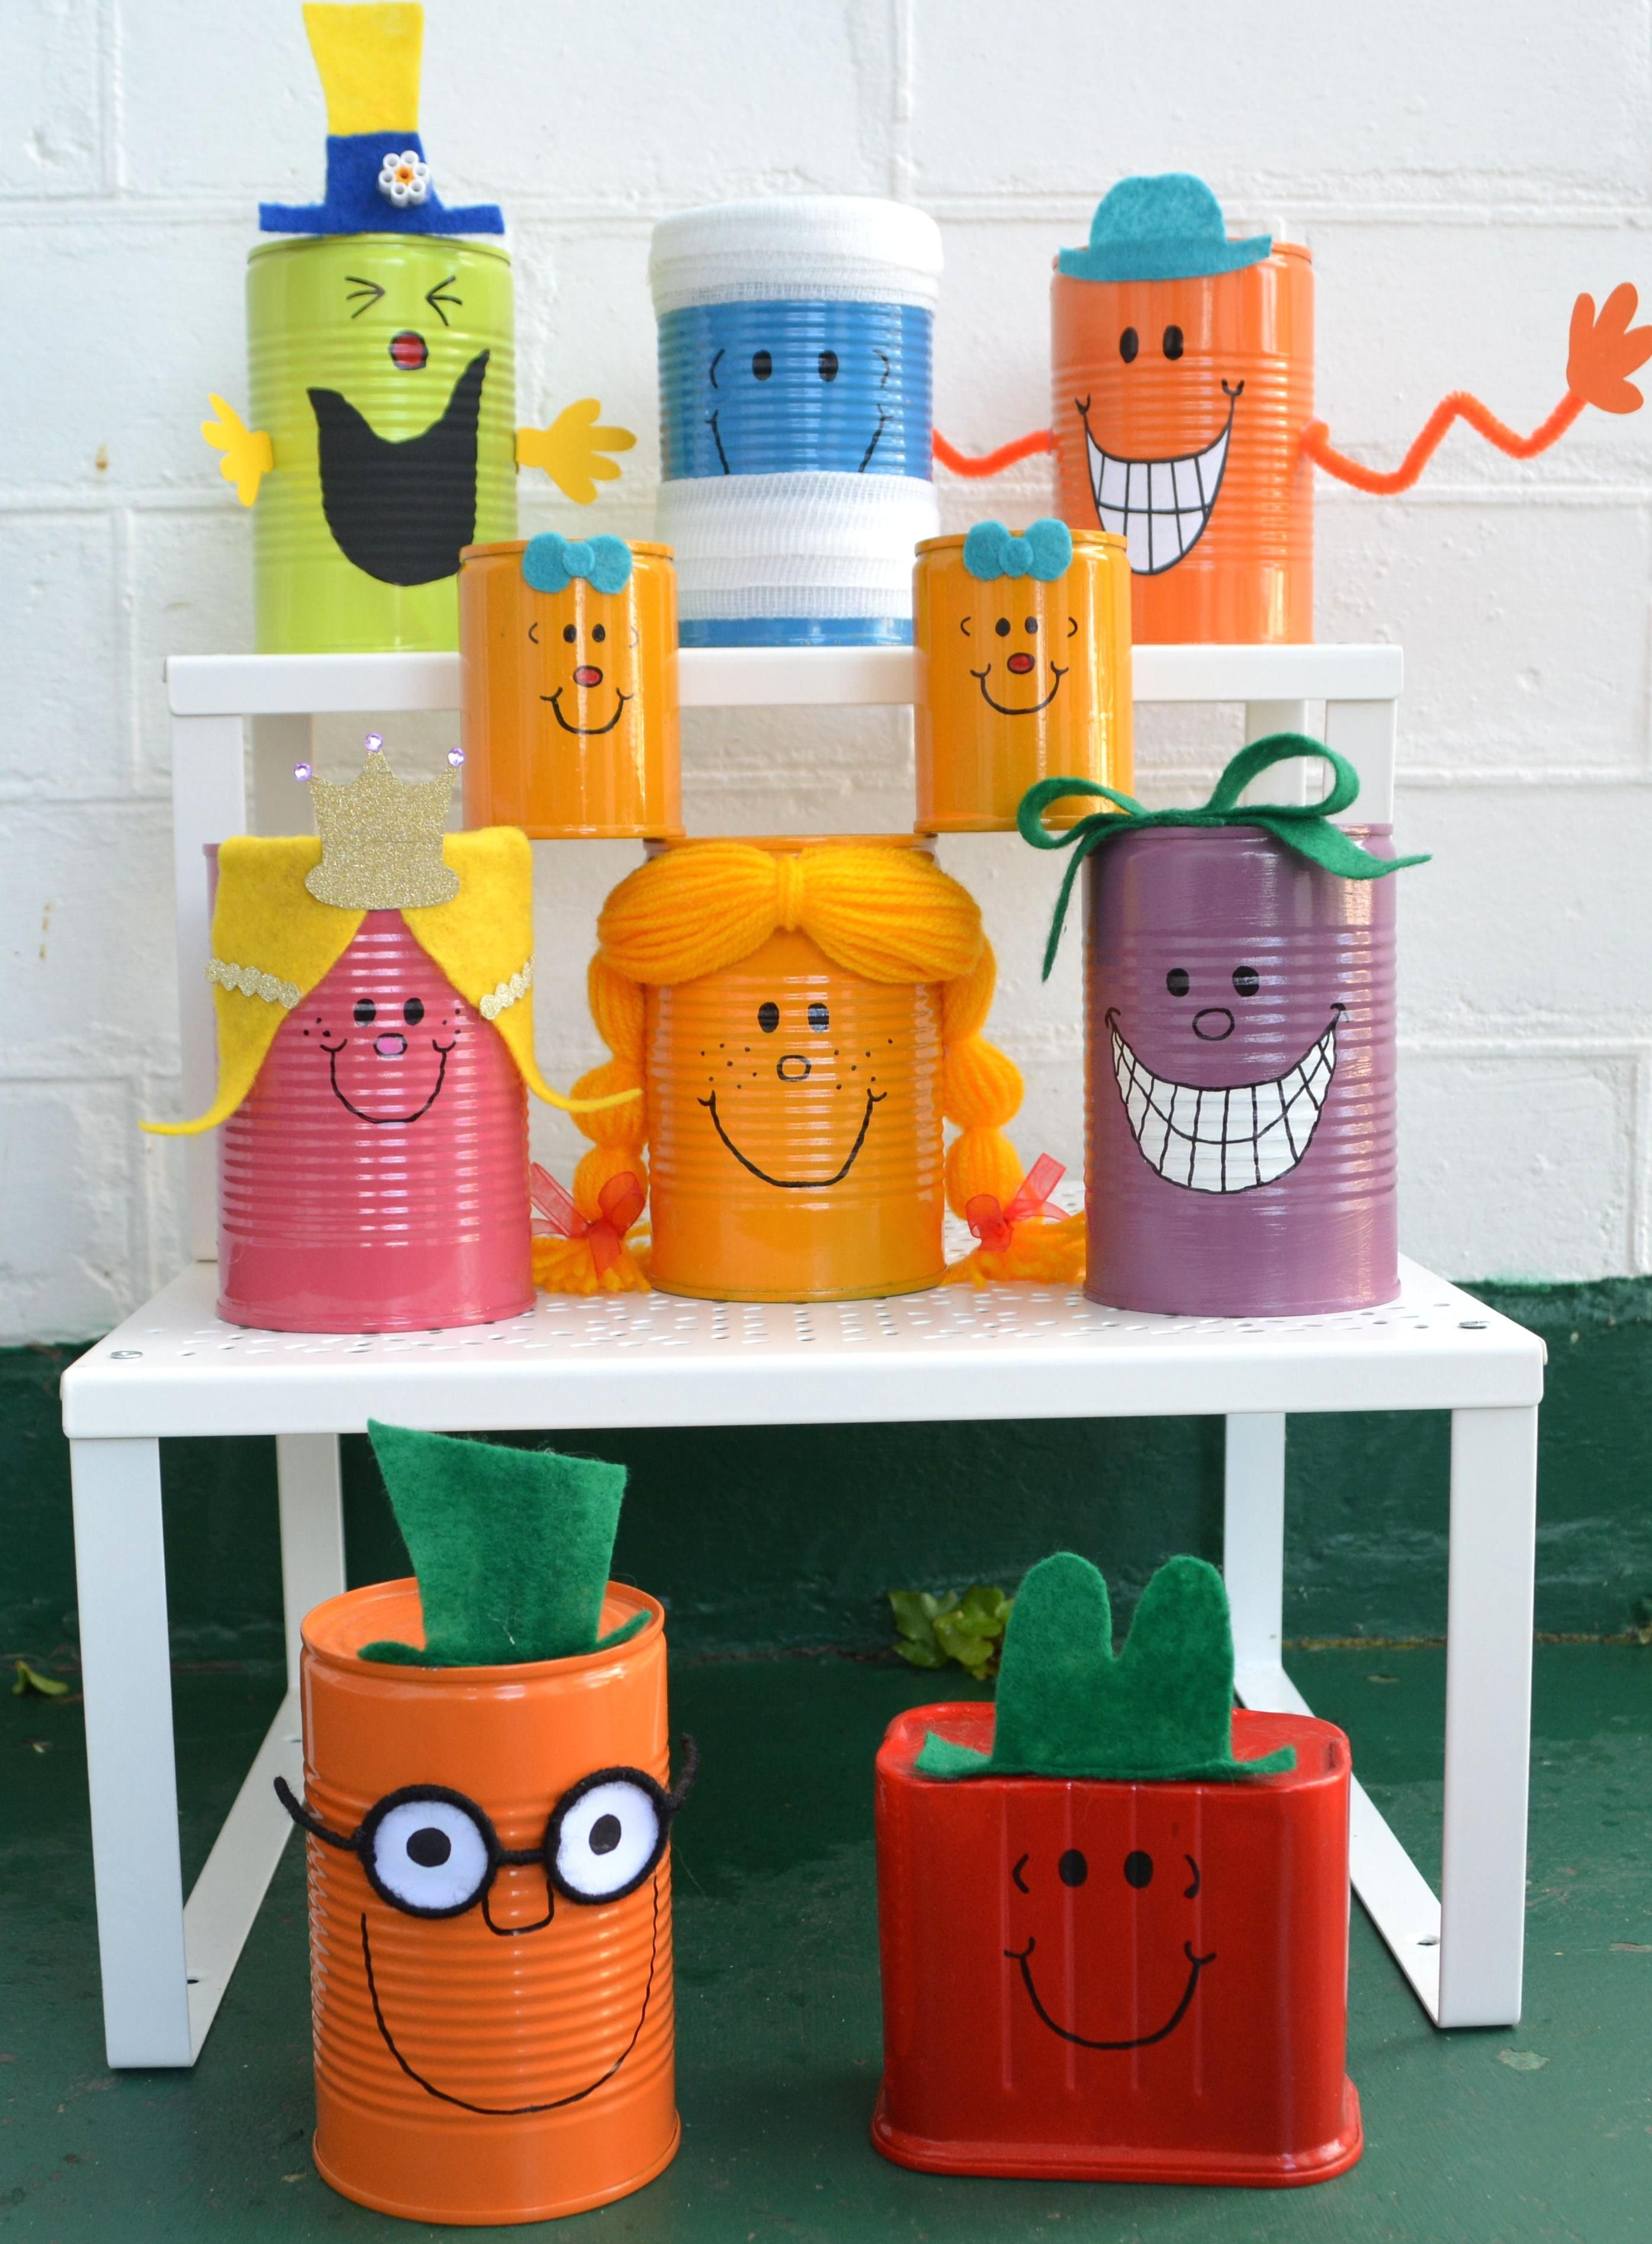 Diy Little Miss Mr Men Tin Can Decorations Made For My Daughters Little Miss Sunshine 1st Birthday Party In 2020 Mr Men Mr Men Party Tin Can Decorations